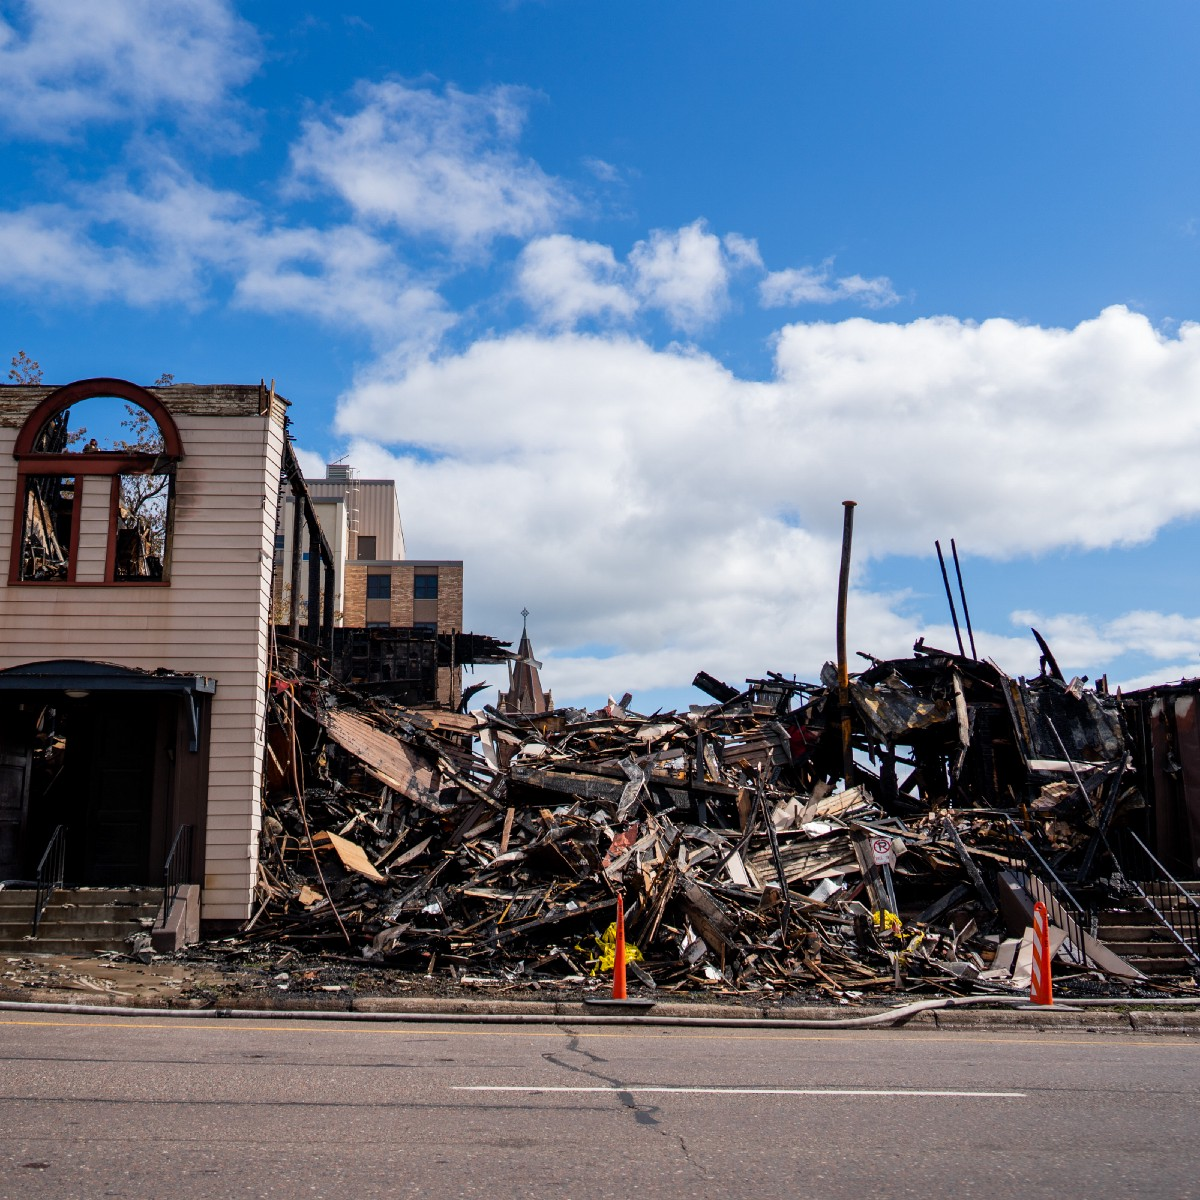 My Family's Synagogue Was Burned Down. How Is This Not a Hate Crime?